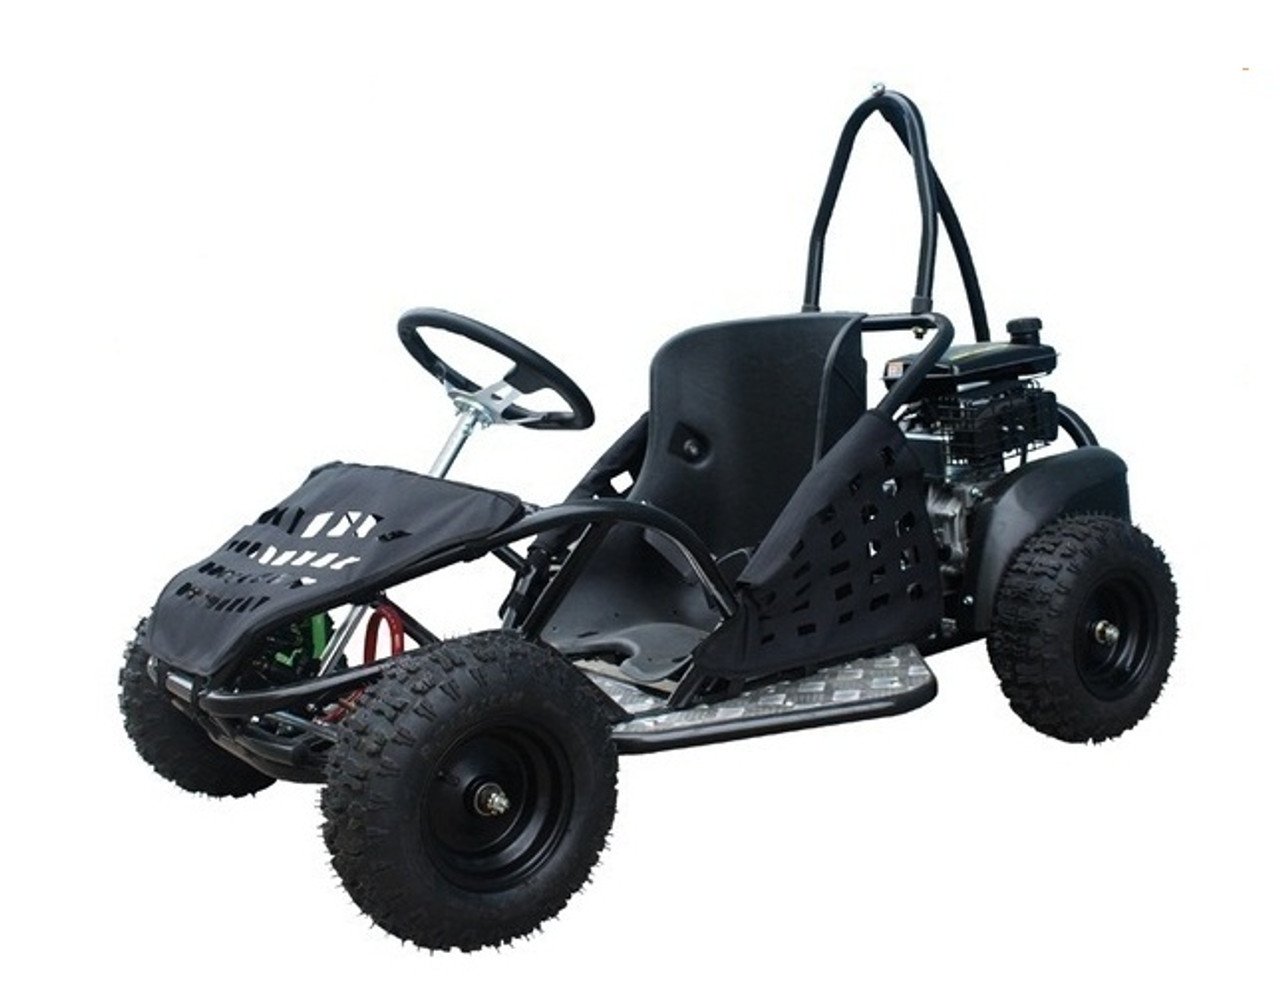 Taotao GK80 80CC Air Cooled, 4-Stroke, 1-Cylinder, Automatic - Fully Assembled and Tested